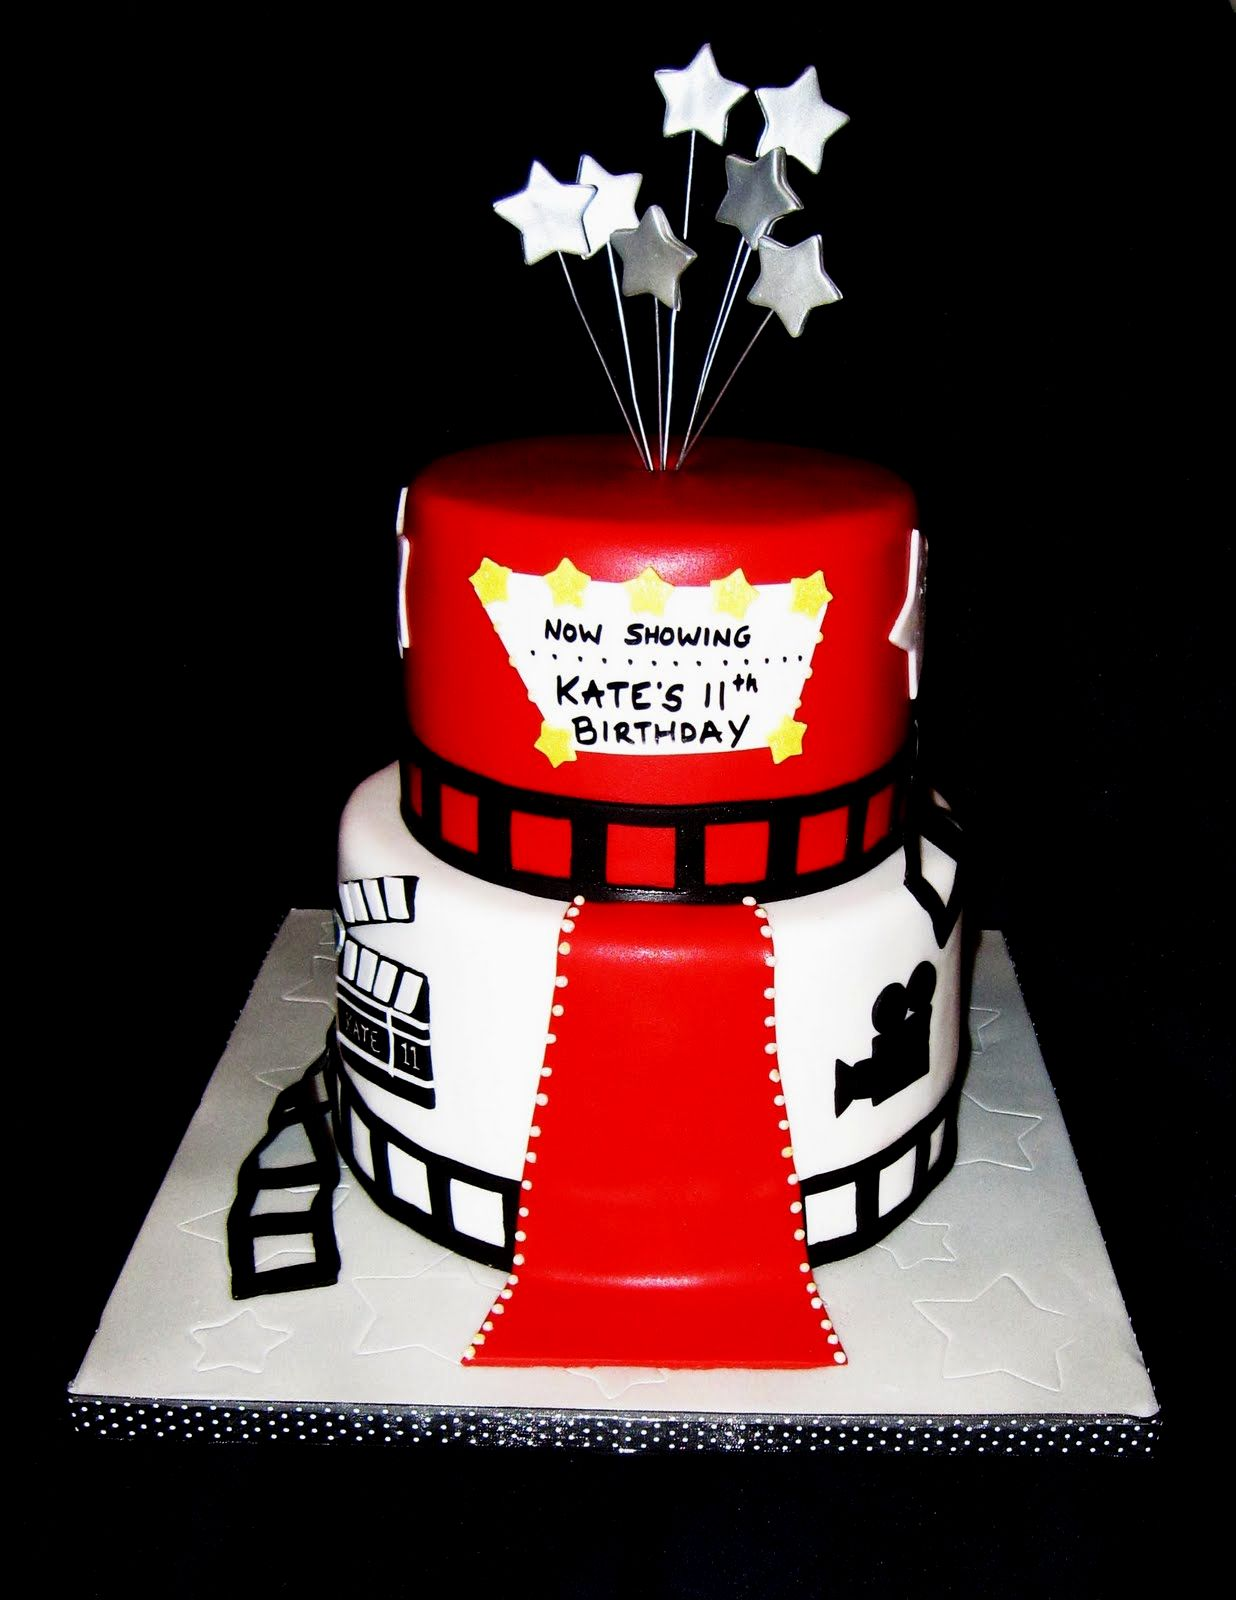 hollywood themed birthday cake design ; hollywood-themed-birthday-cake-design-hollywood-theme-cake-design